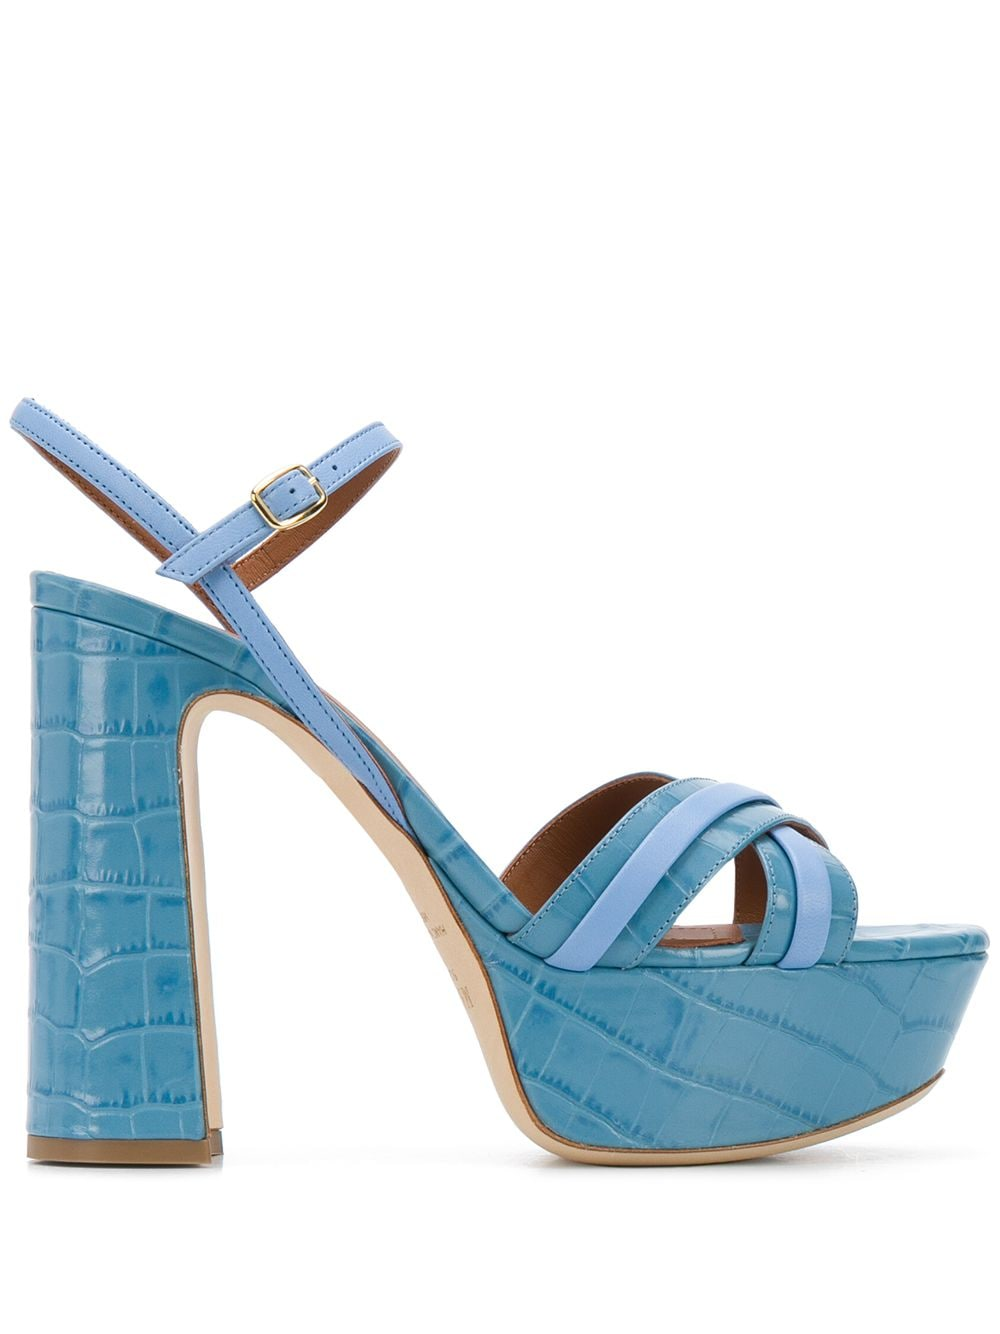 Mila Leather Sandals